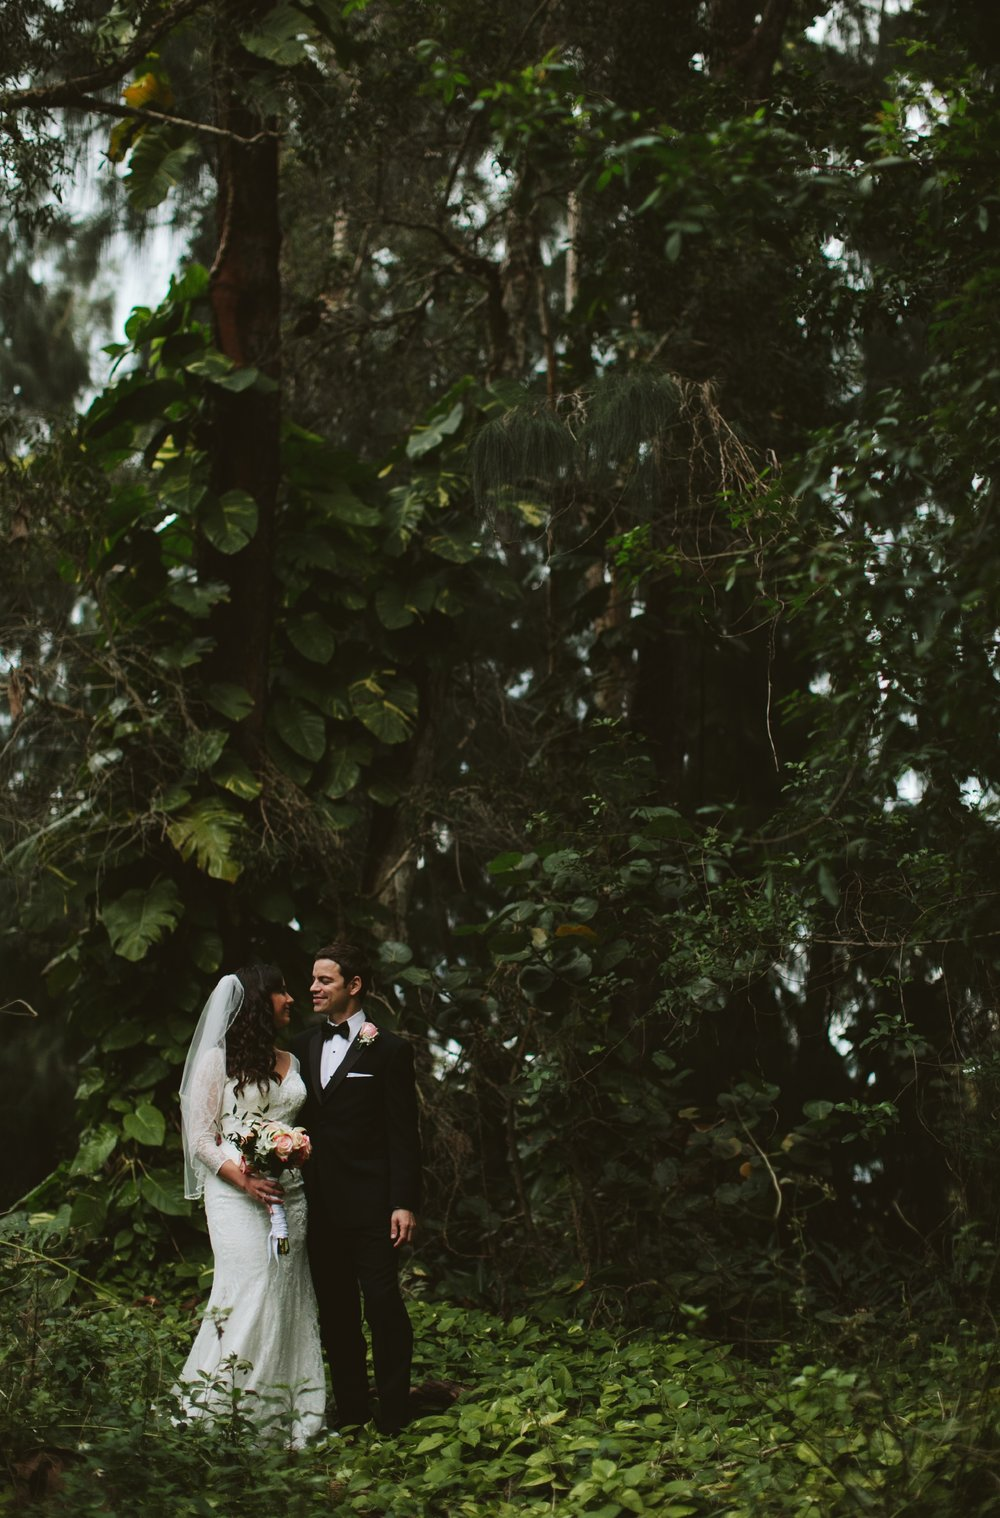 Carina + David's Spanish Monastery Wedding in Miami60.jpg